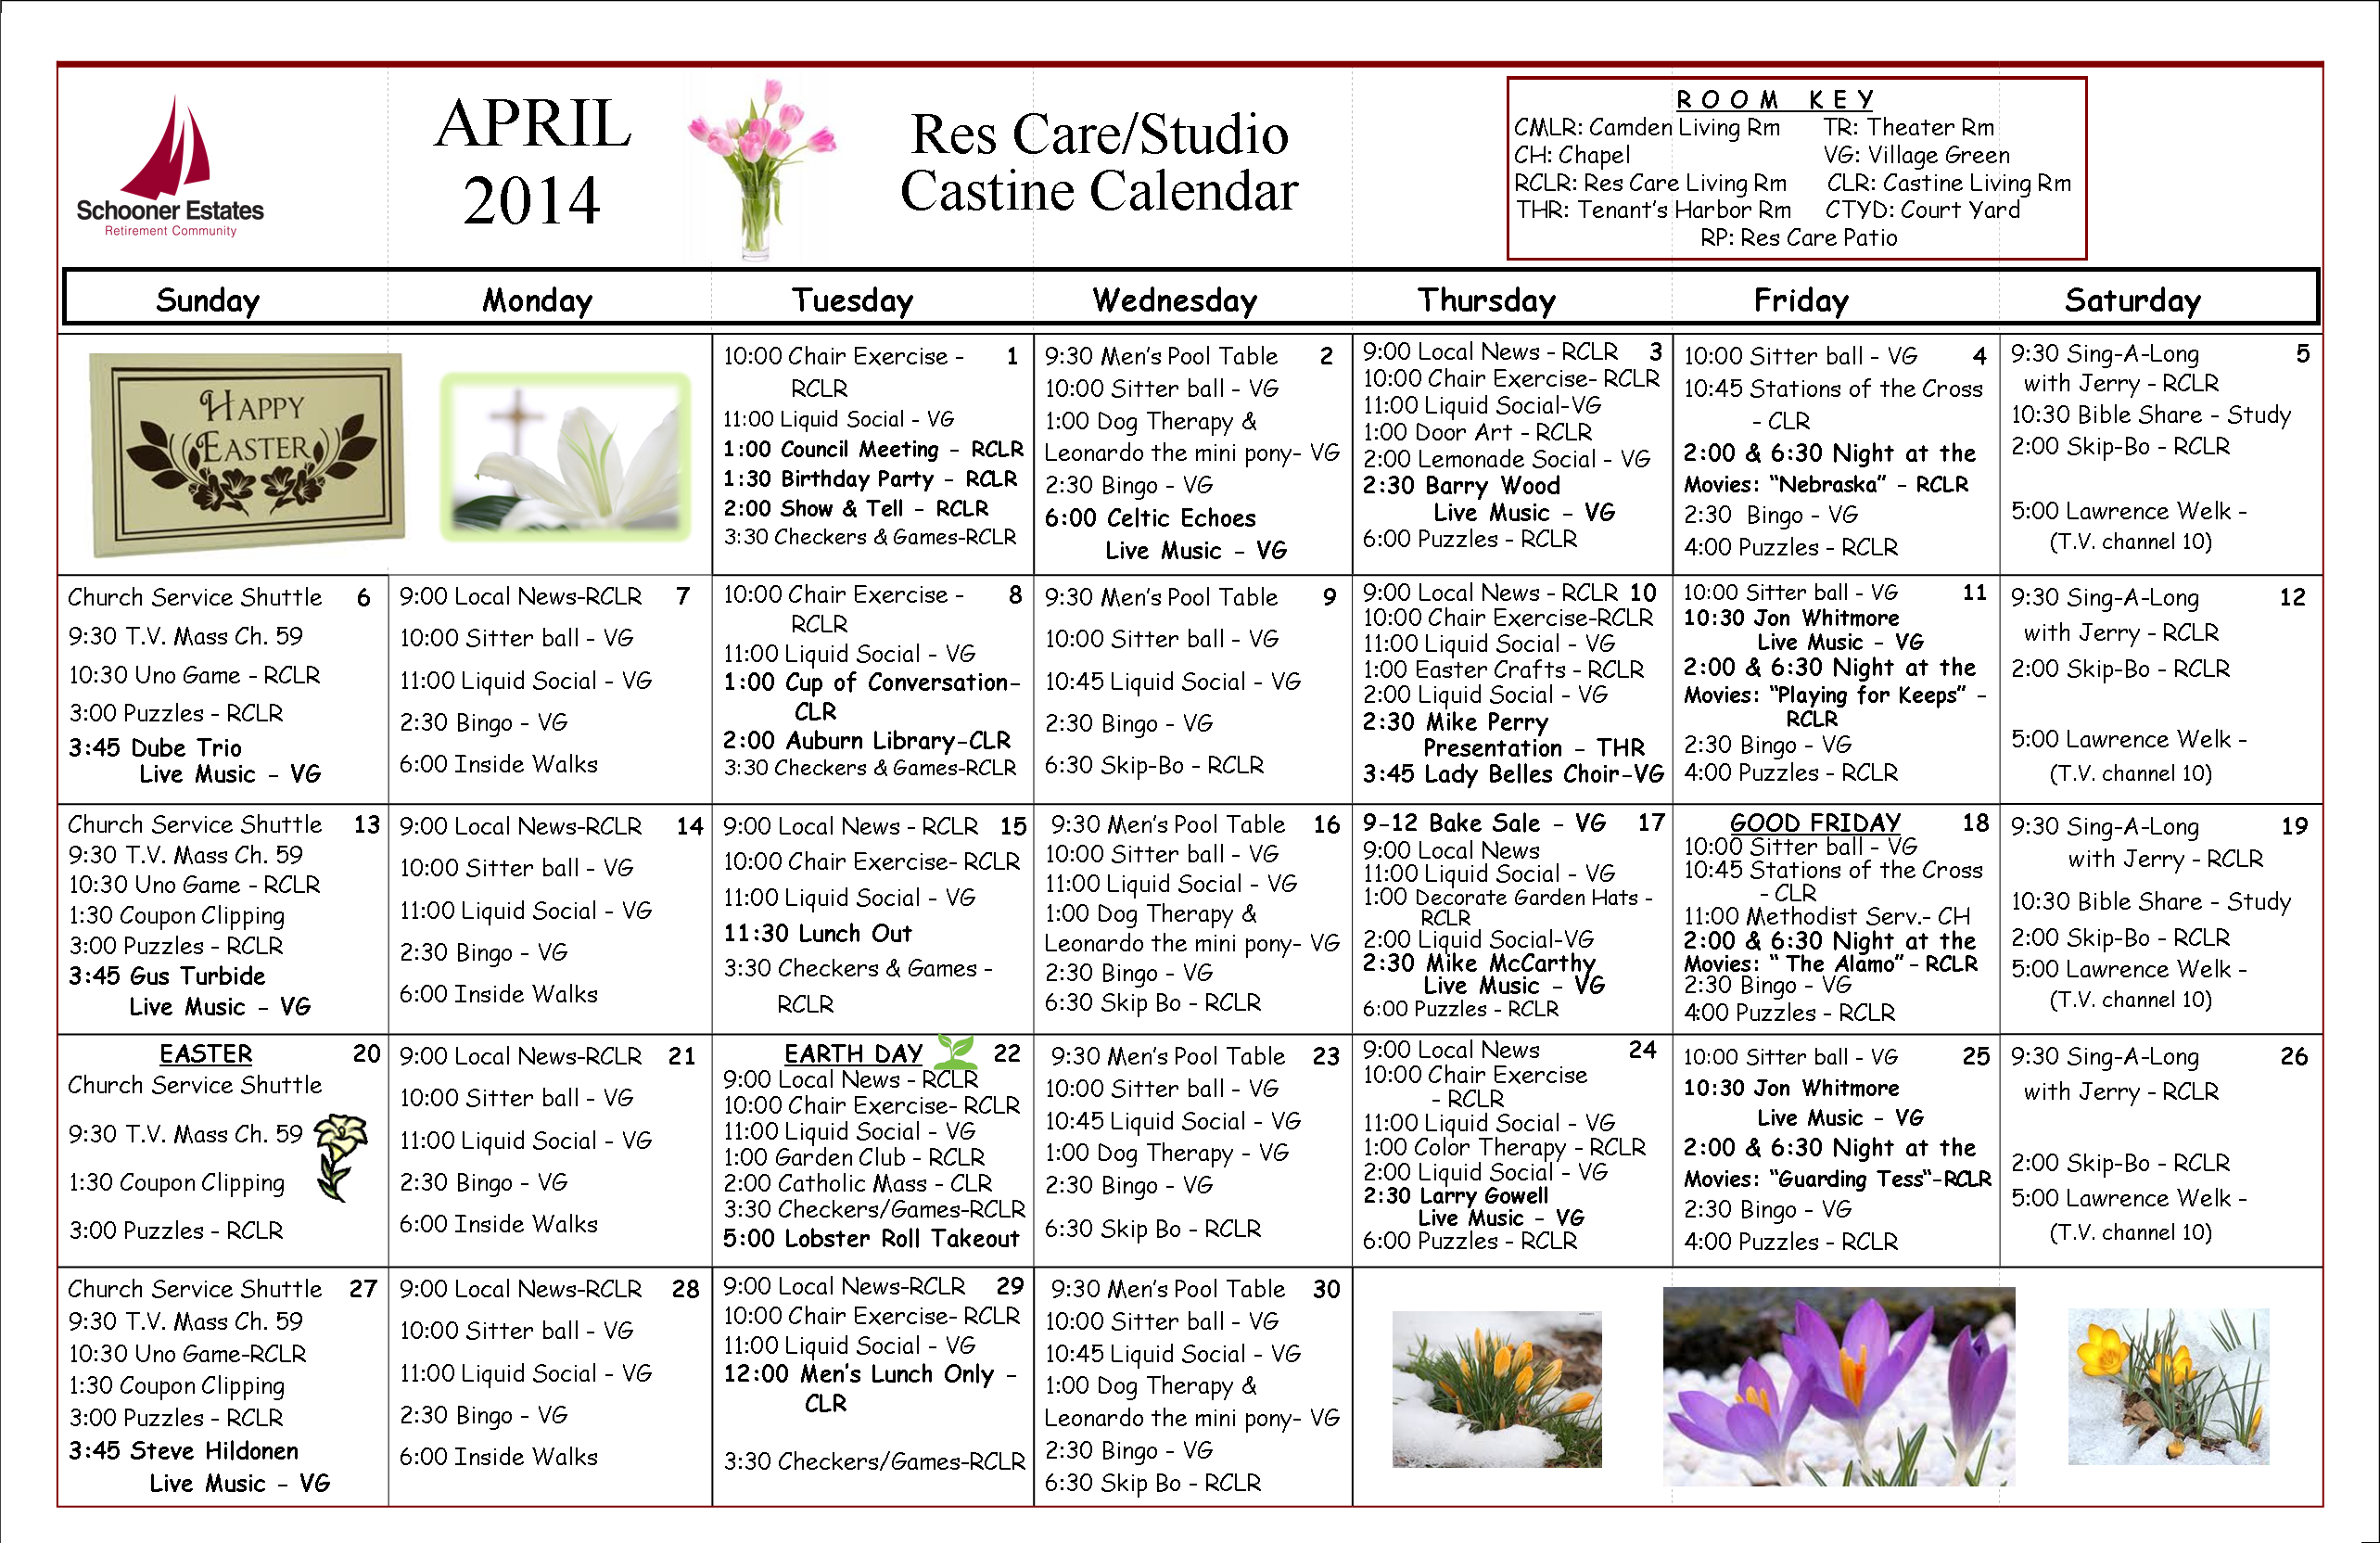 Res Care April Calendar  2014